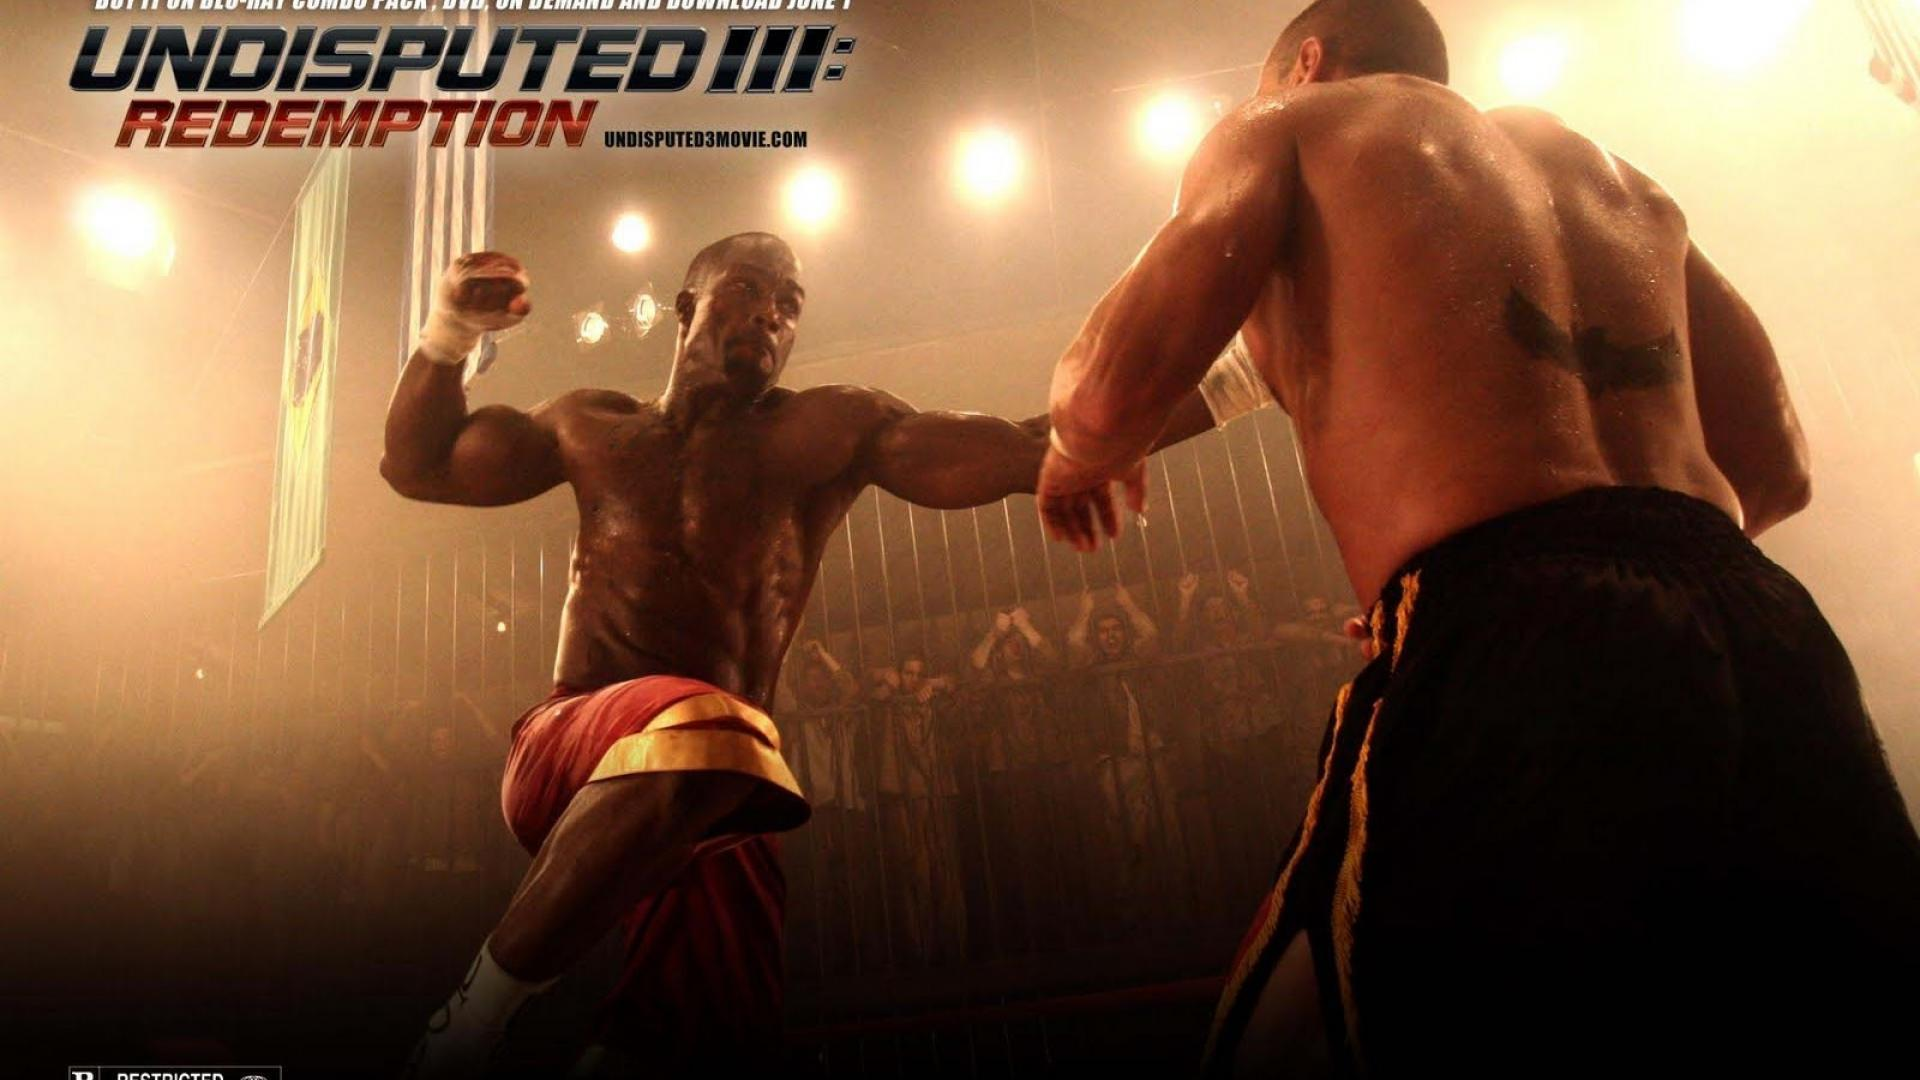 Yuri boyka undisputed scott adkins iii: redemption wallpaper | (4234)